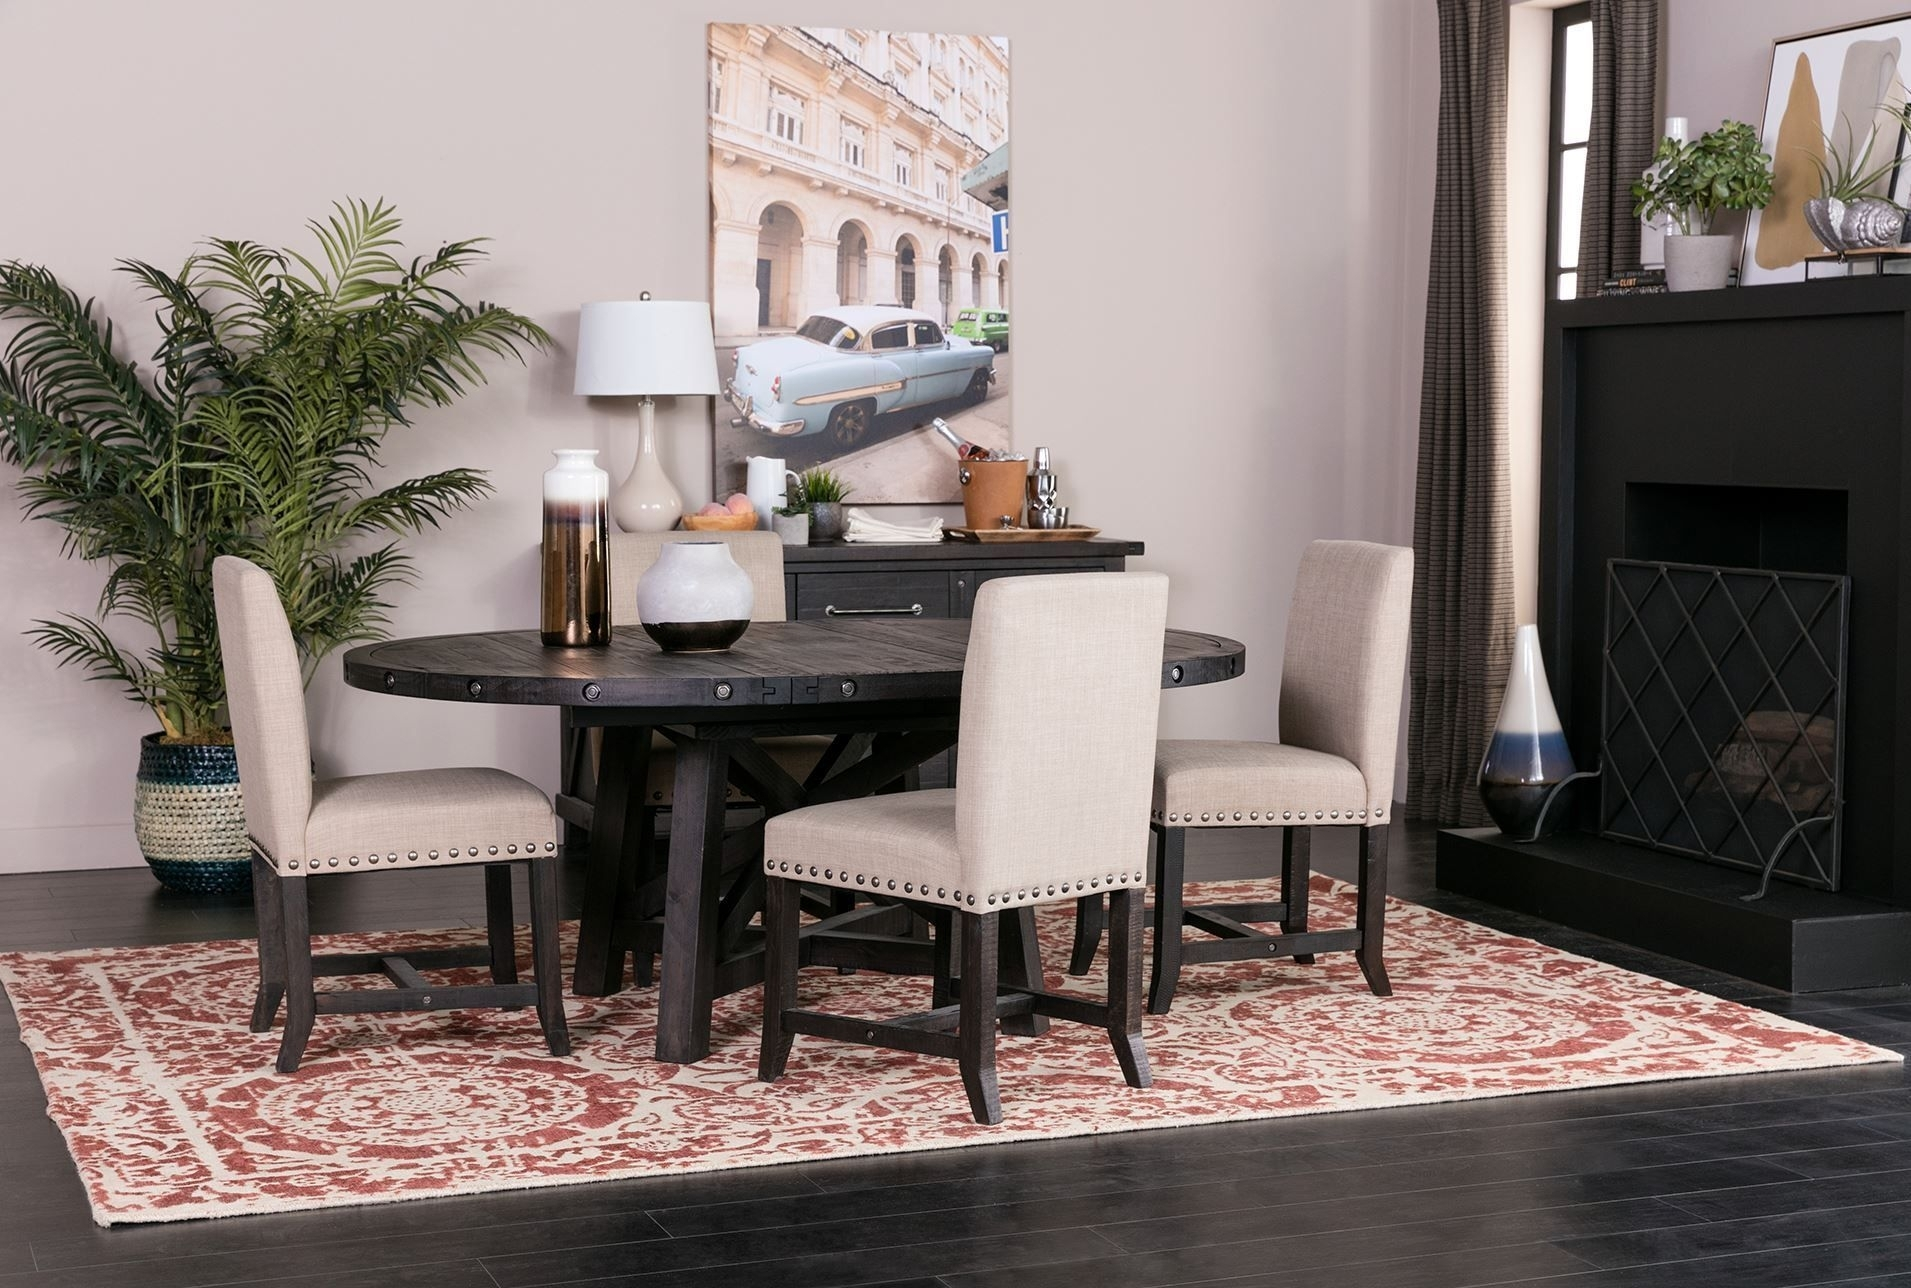 Jaxon 5 Piece Round Dining Set W/upholstered Chairs | Round Dining Inside Most Recently Released Jaxon 5 Piece Round Dining Sets With Upholstered Chairs (Image 10 of 20)